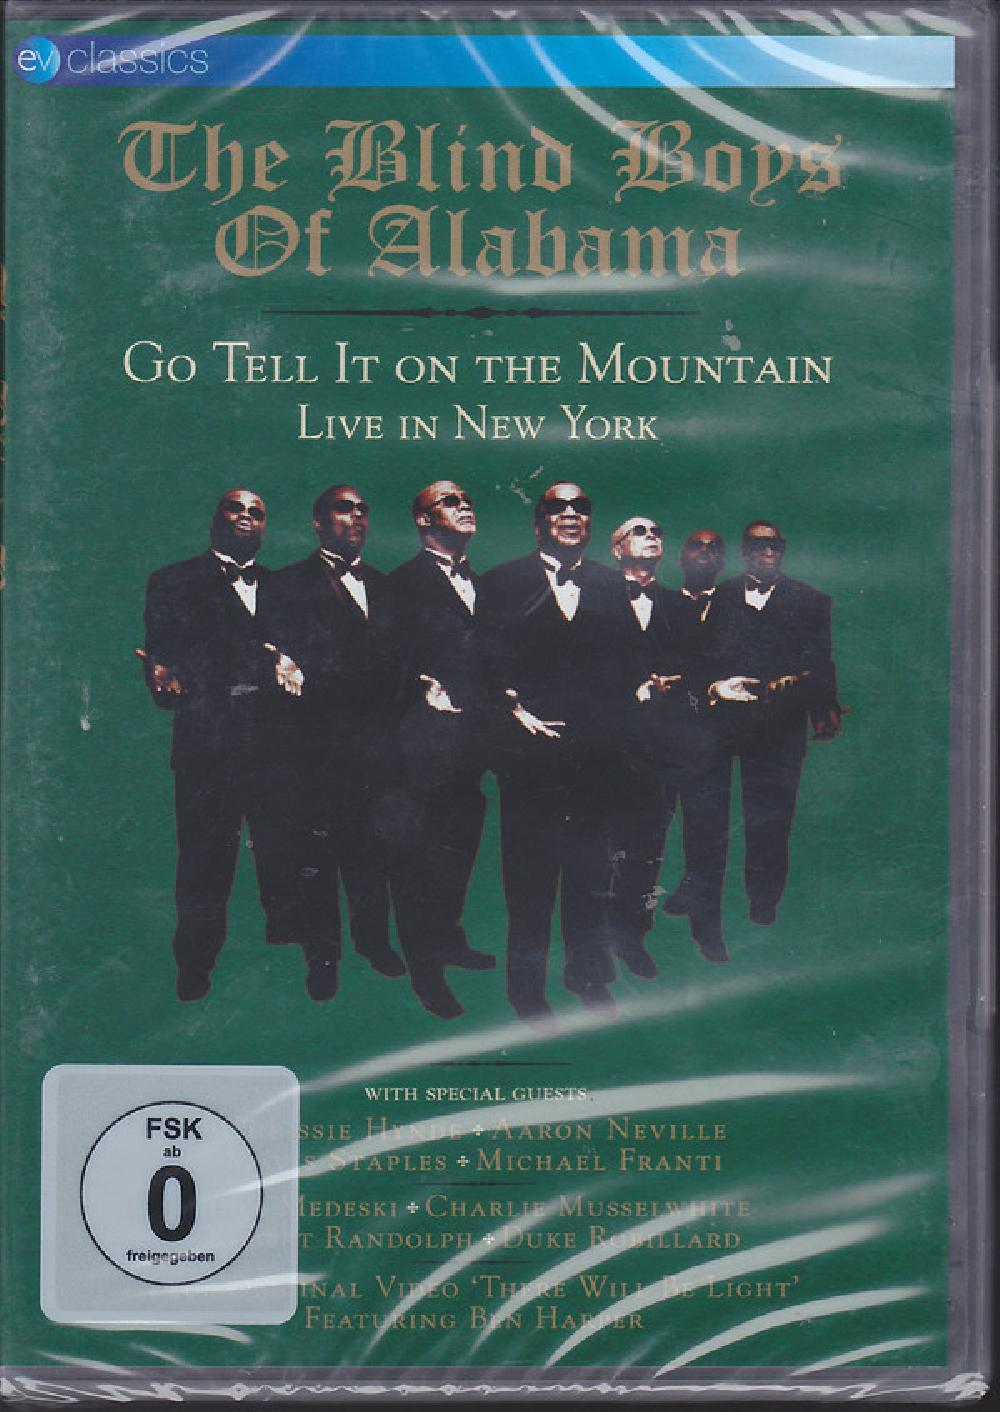 THE BLIND BOYS OF ALABAMA - Go Tell It On The Mountain - Live In New York - DVD